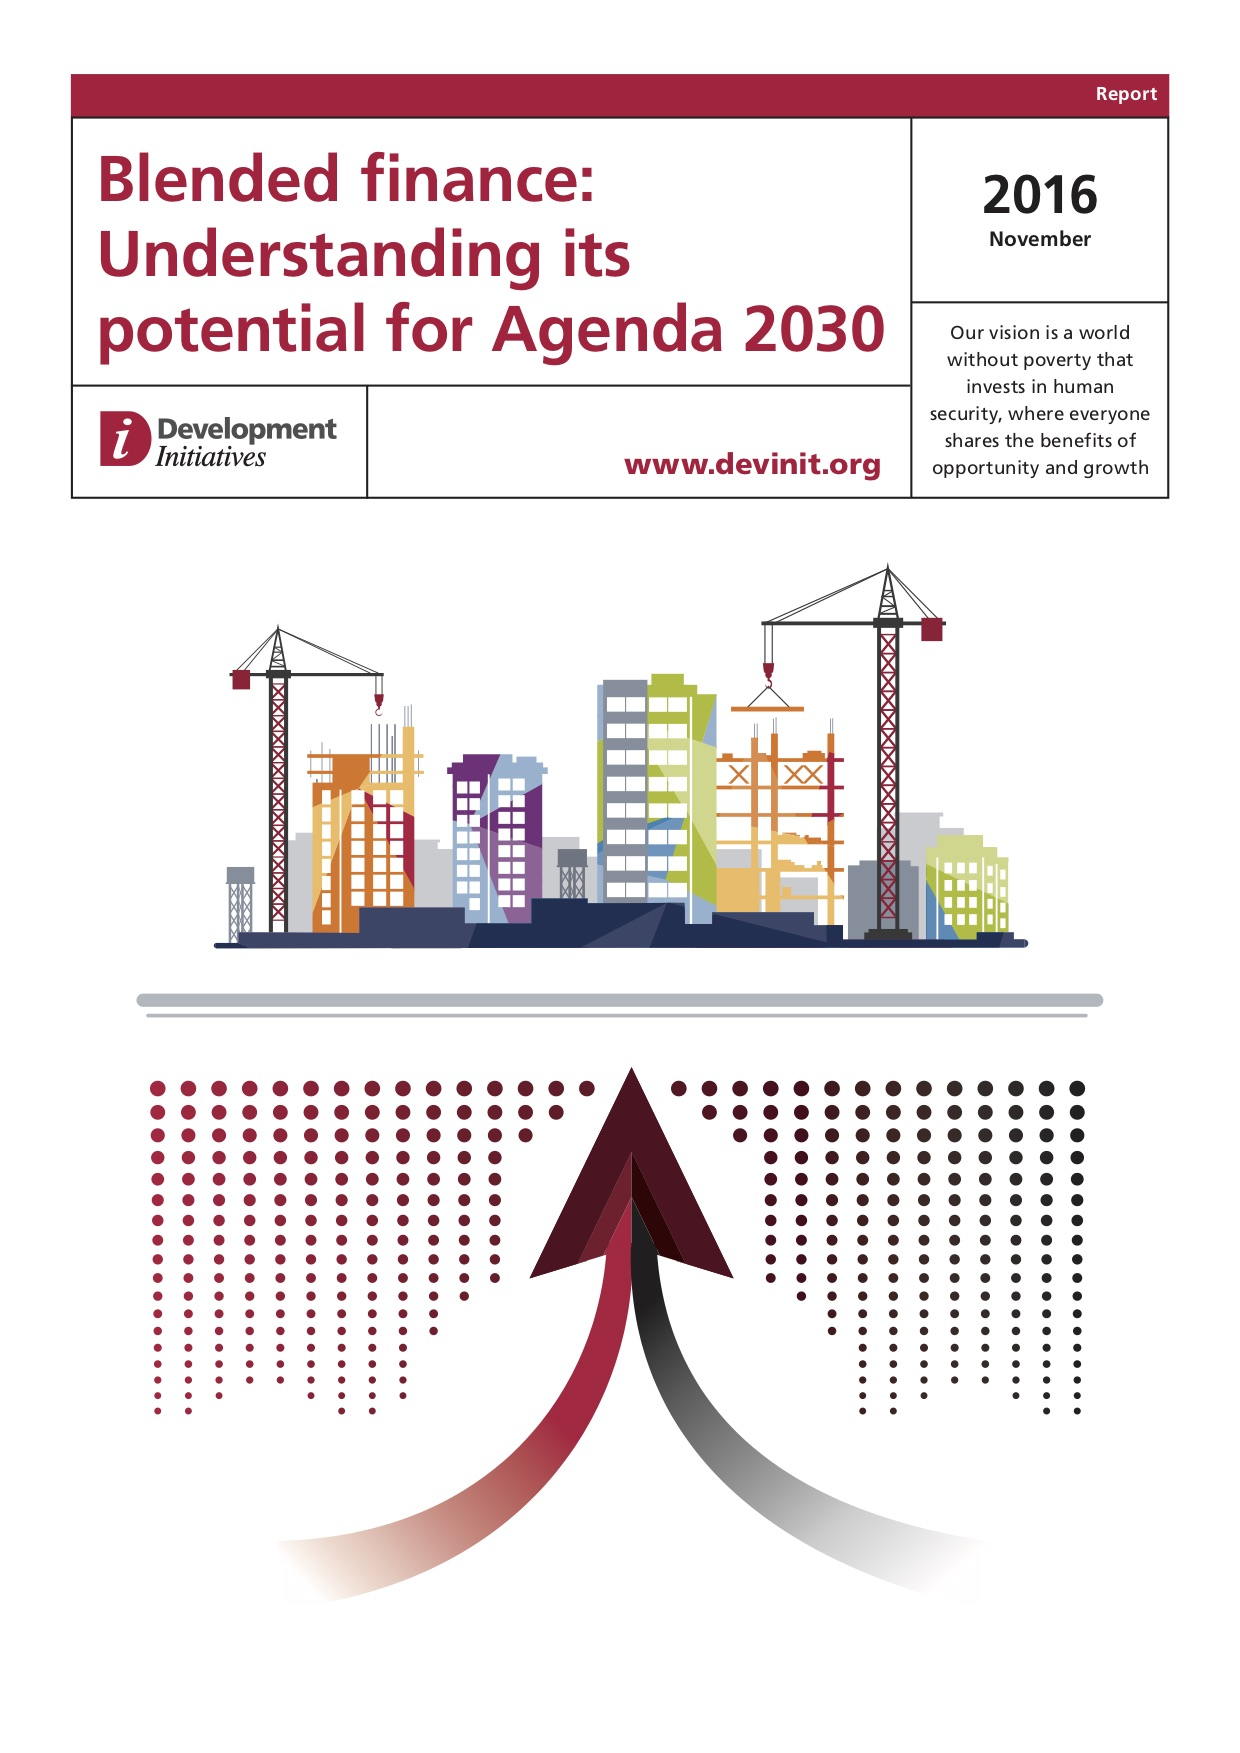 Blended finance: Understanding its potential for Agenda 2030